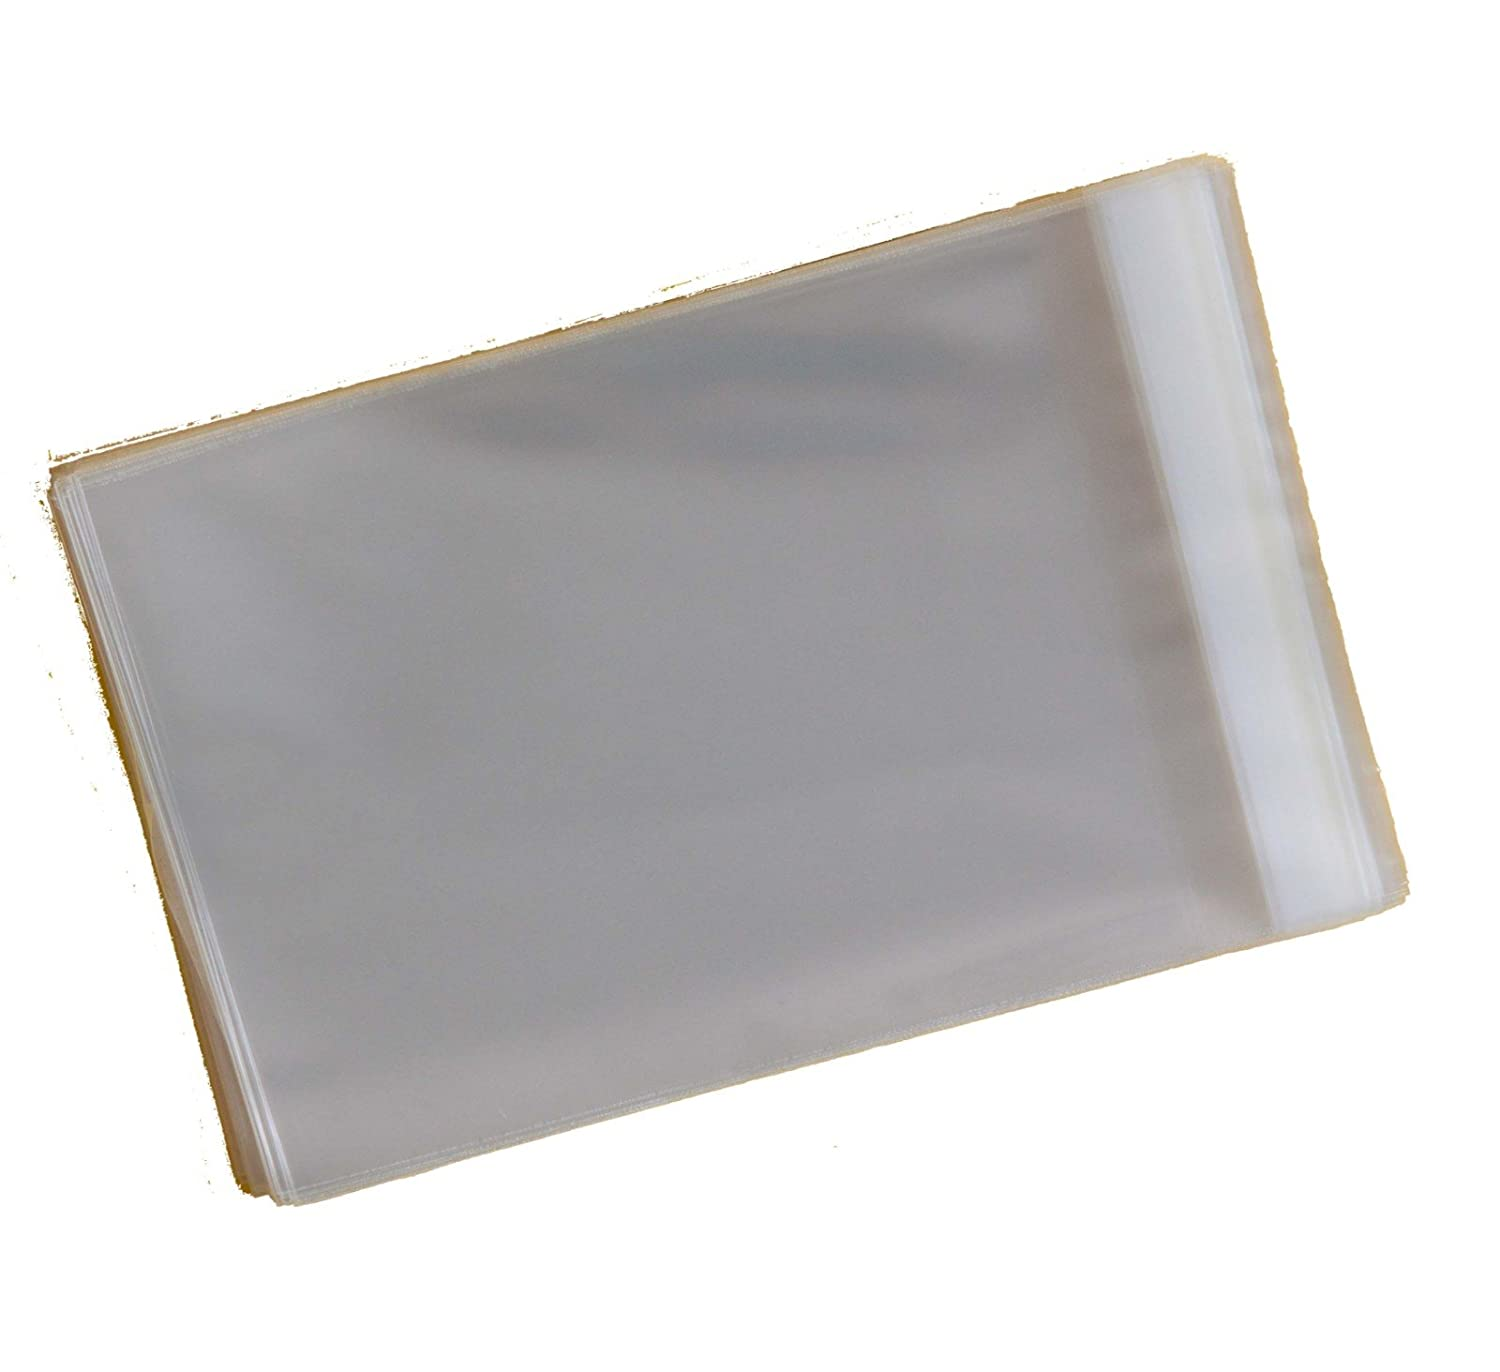 Pack of 100 - C6 - Cellophane Greeting Card Display Bags 30 Micron Self Seal - 120mm x 162mm + 30mm Flap Celloexpress Soho Paper Products